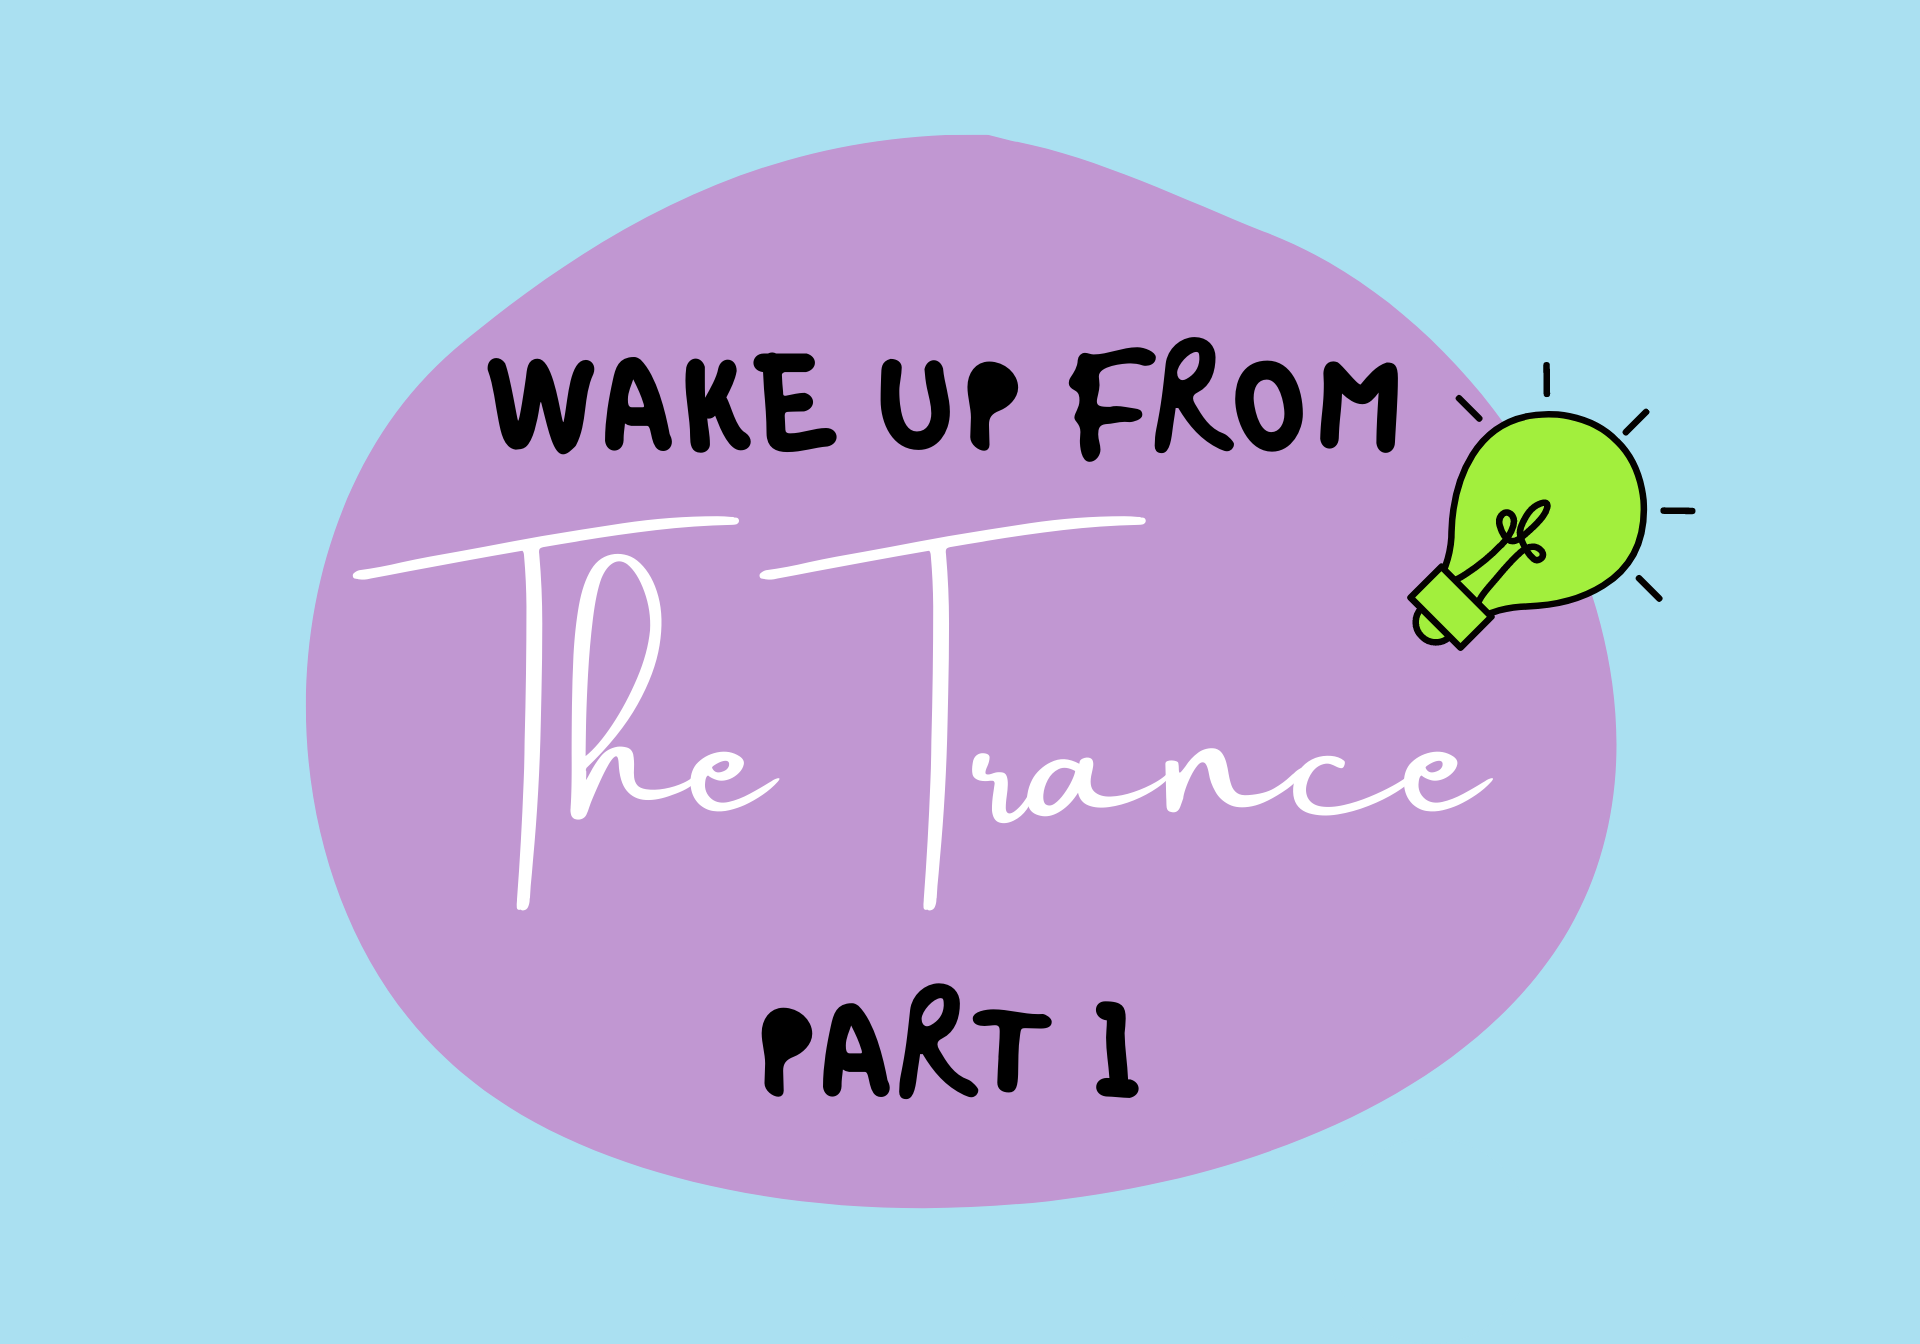 Wake Up From The Trance - Part 1